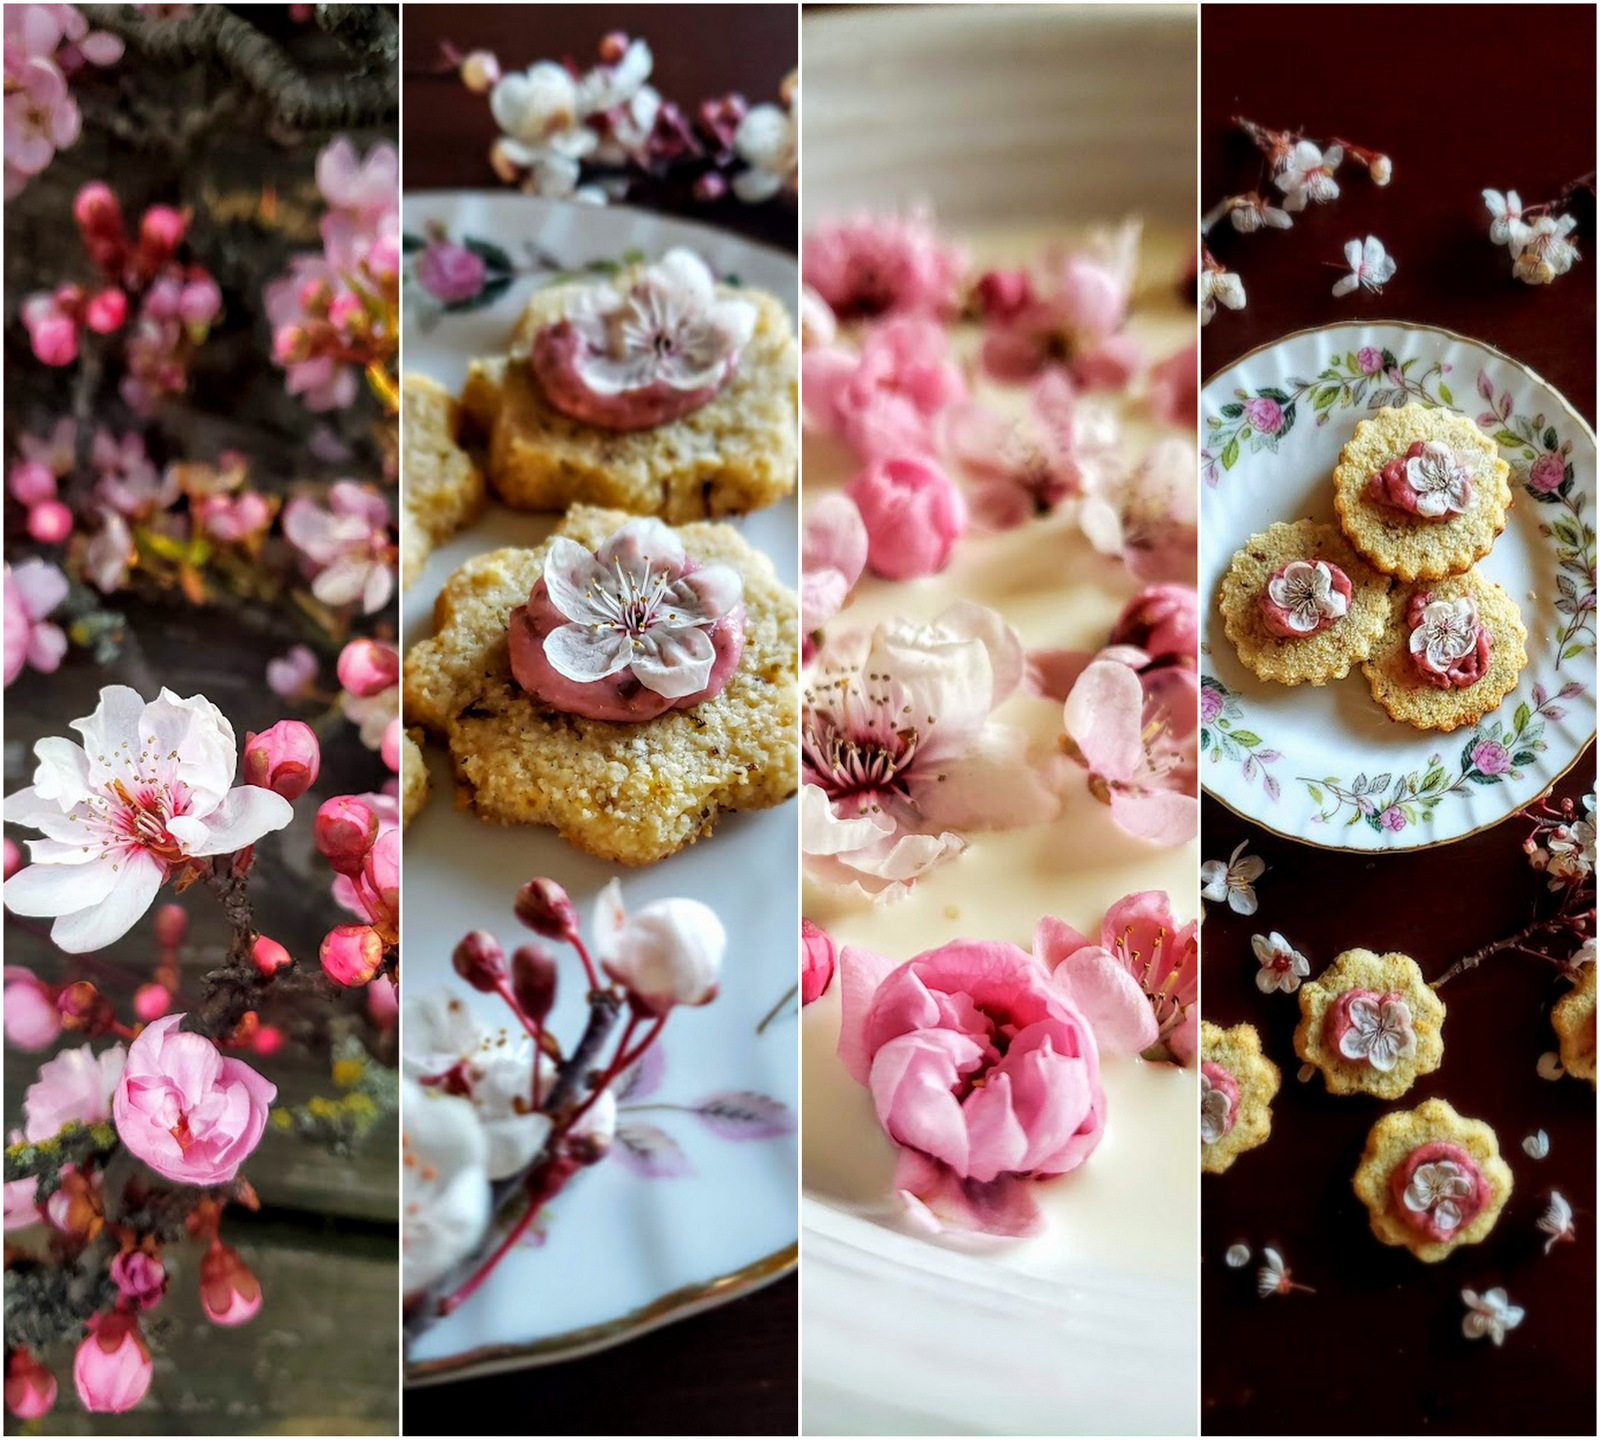 Foraging & Cooking with Ornamental Purple Plum Blossom: Spring Floral Confections! — Gather Victoria